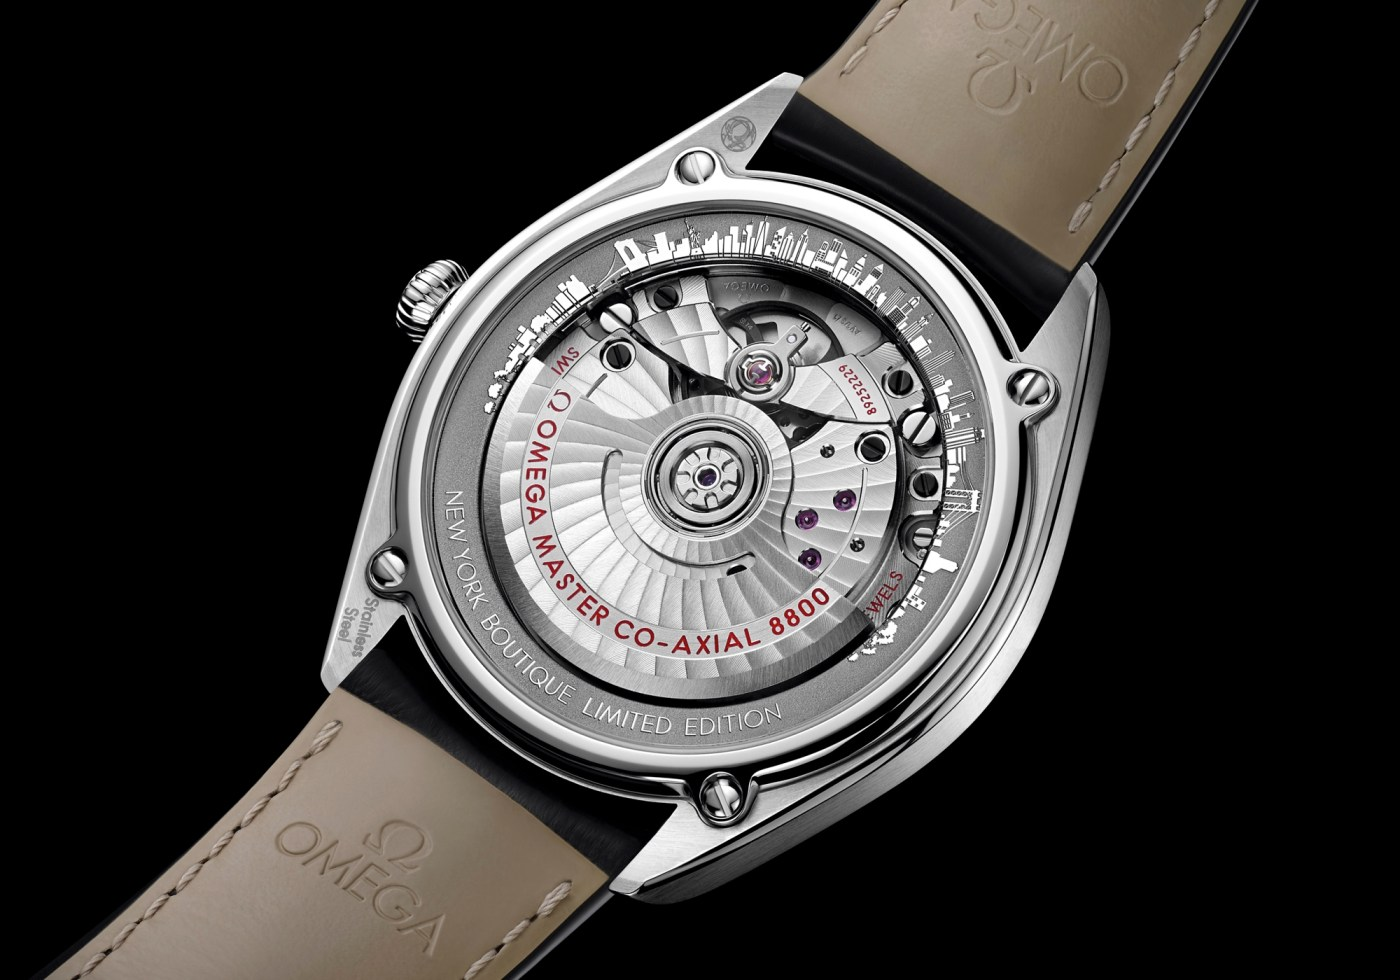 Omega Seamaster New York Limited Edition caseback